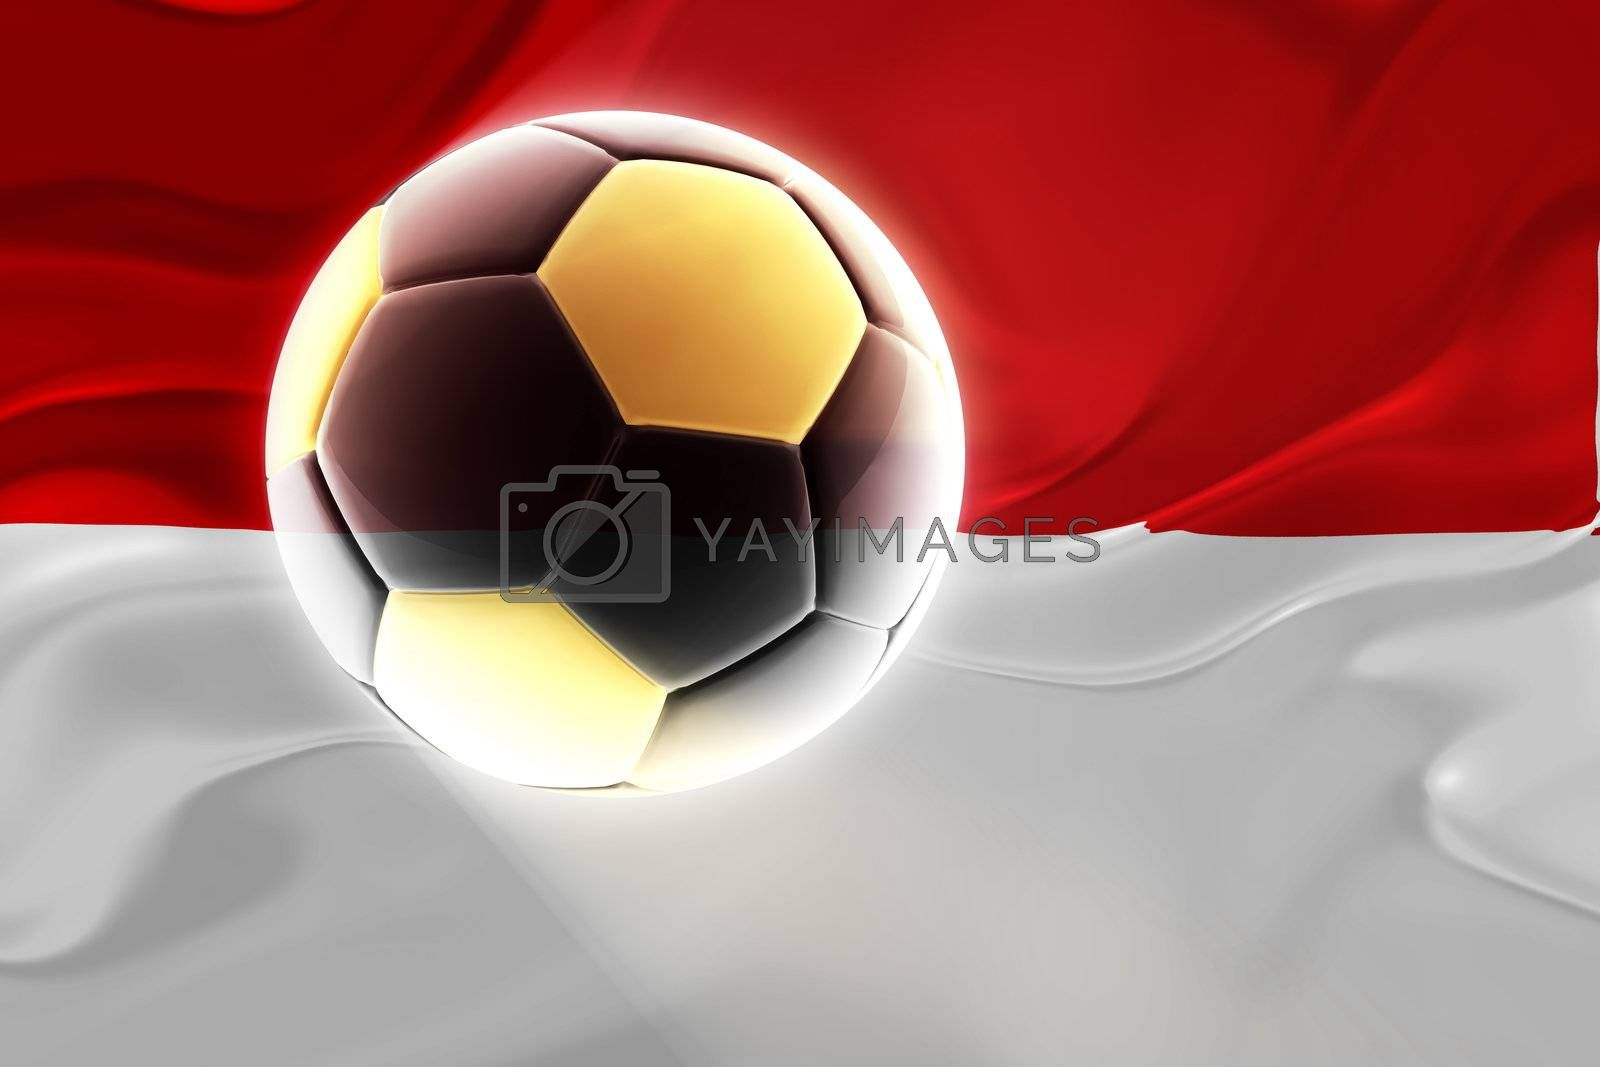 Flag of Indonesia, national country symbol illustration wavy fabric sports soccer football